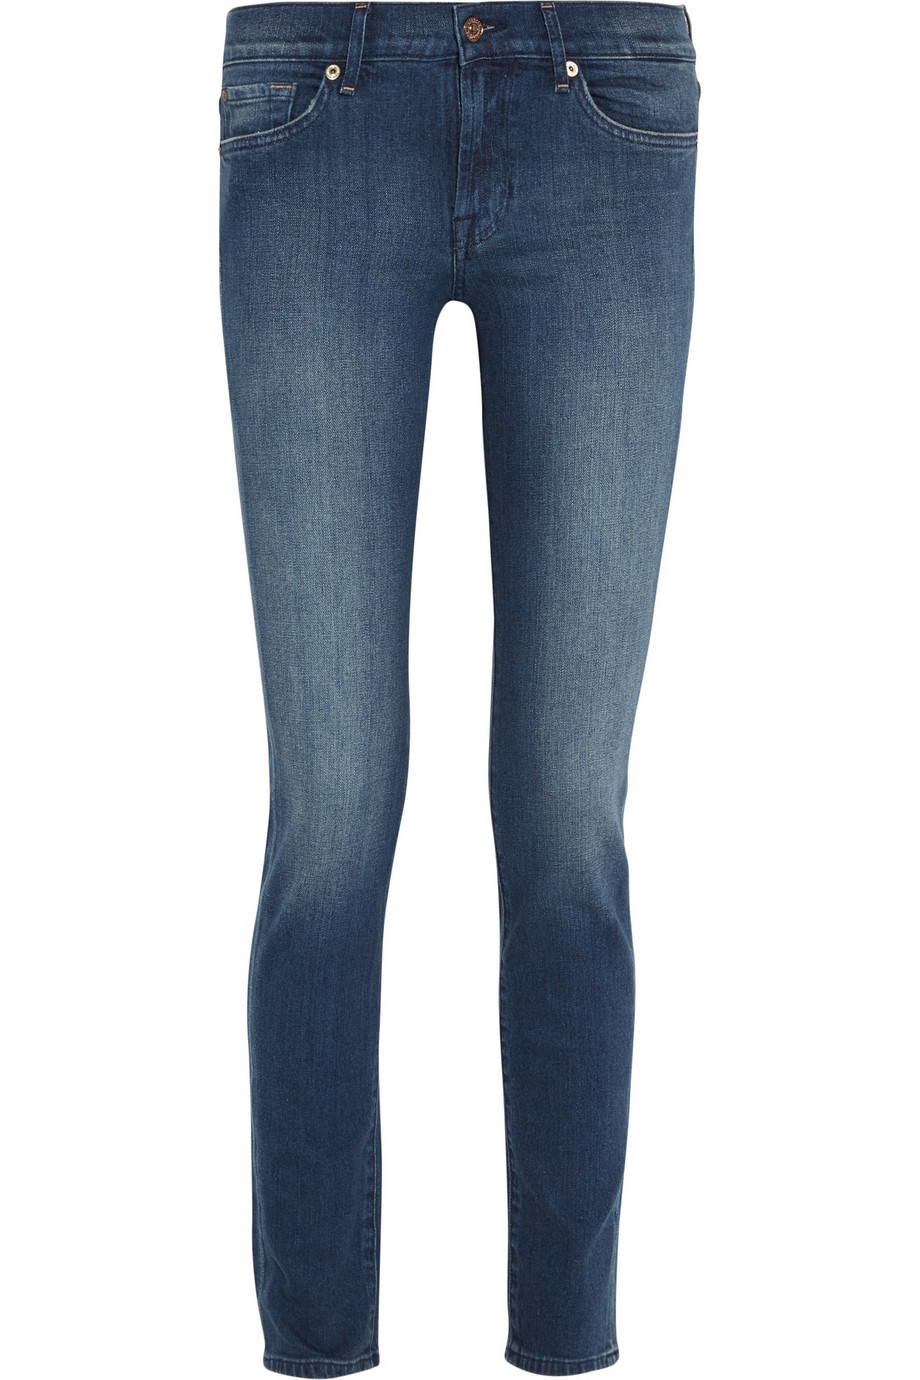 Roxanne Mid Rise Straight Leg Jeans Mid Denim - style: straight leg; length: standard; pattern: plain; pocket detail: traditional 5 pocket; waist: mid/regular rise; predominant colour: denim; occasions: casual; fibres: cotton - stretch; jeans detail: shading down centre of thigh; texture group: denim; pattern type: fabric; season: a/w 2015; wardrobe: basic